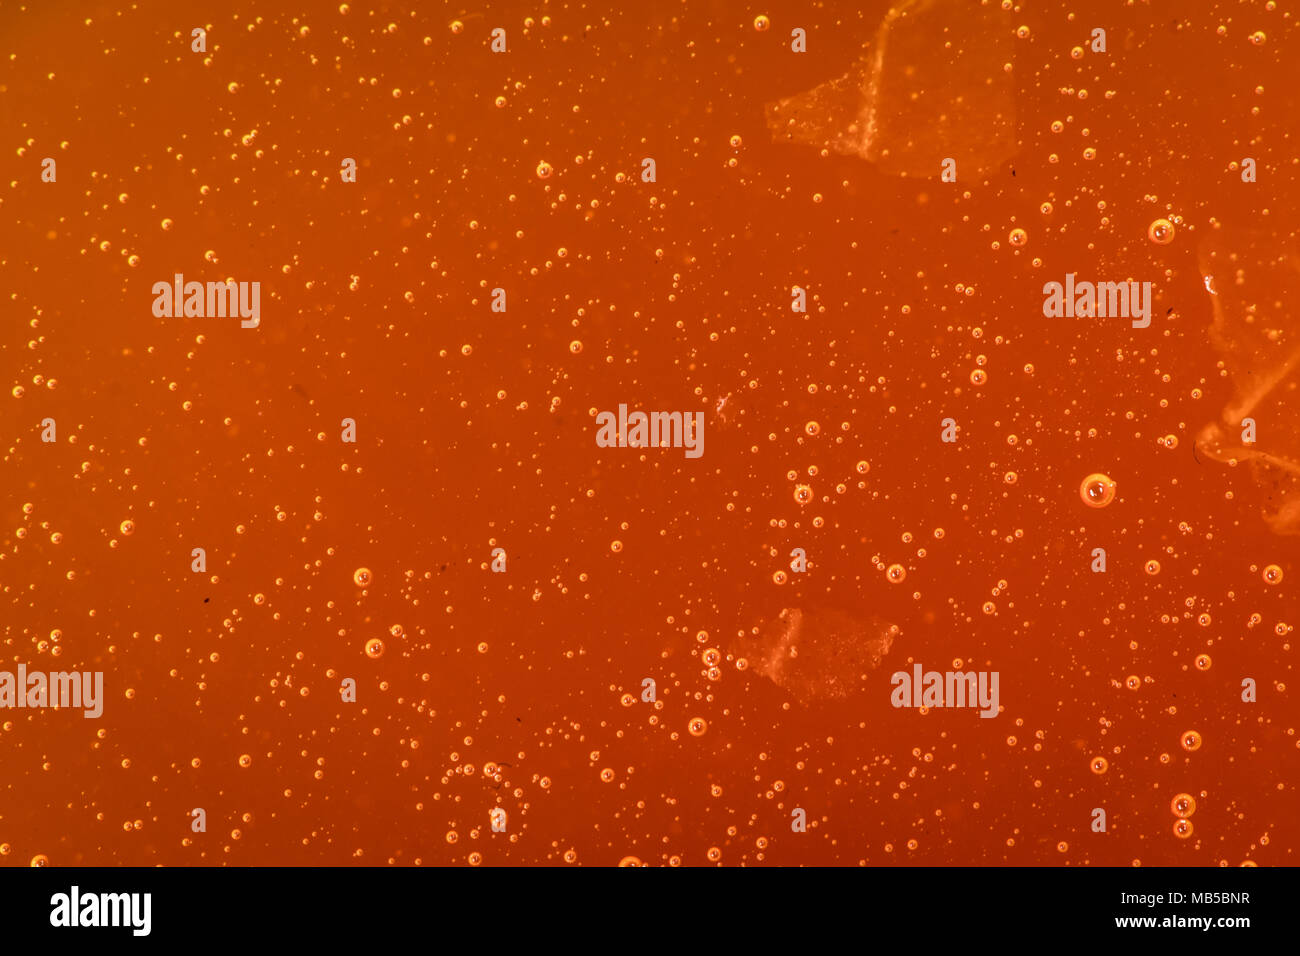 Air Bubbles in Thick Honey covering image - Stock Image